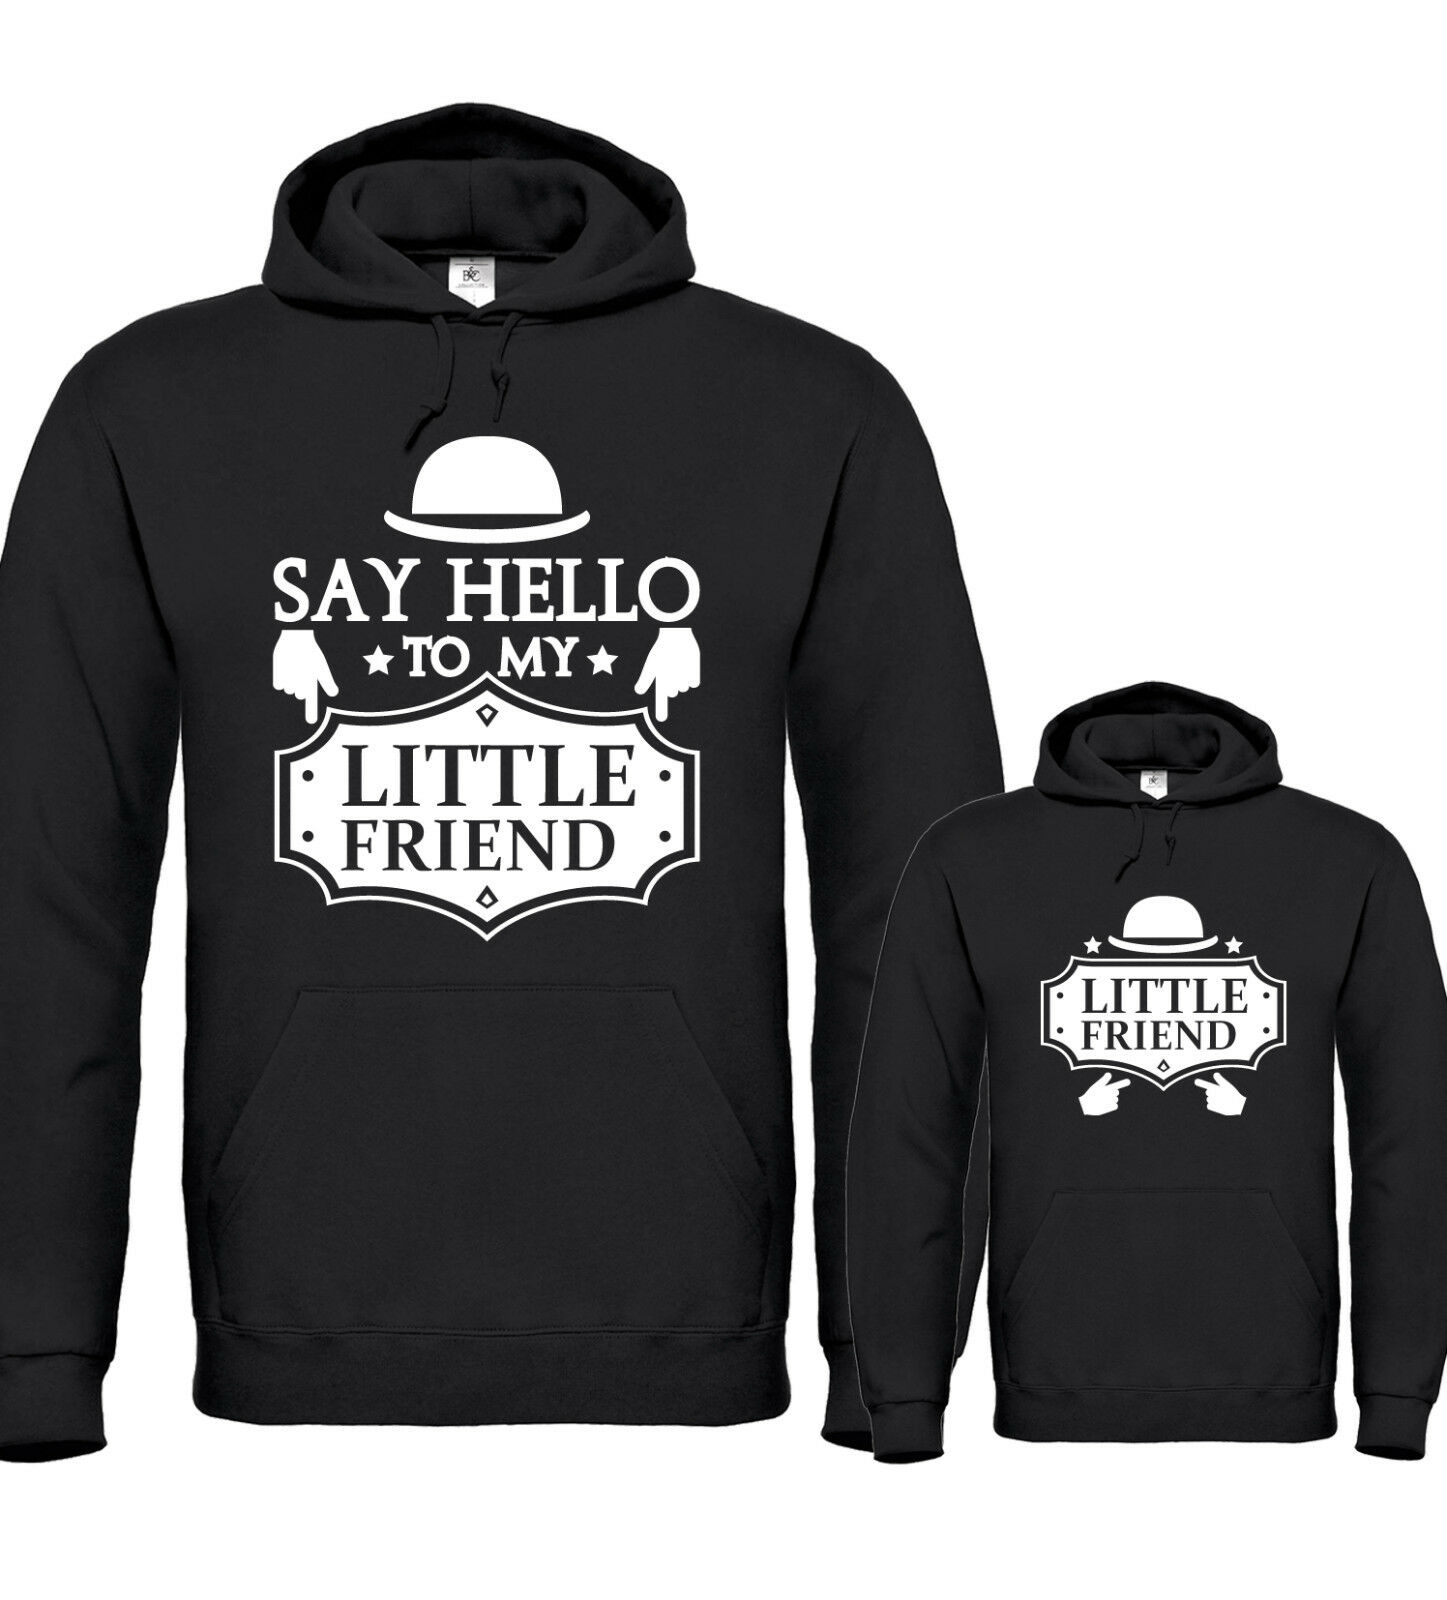 SAY HELLO TO MY LITTLE FRIEND - Vater / Sohn Partner Hoodies - Taufe Papa Geburt